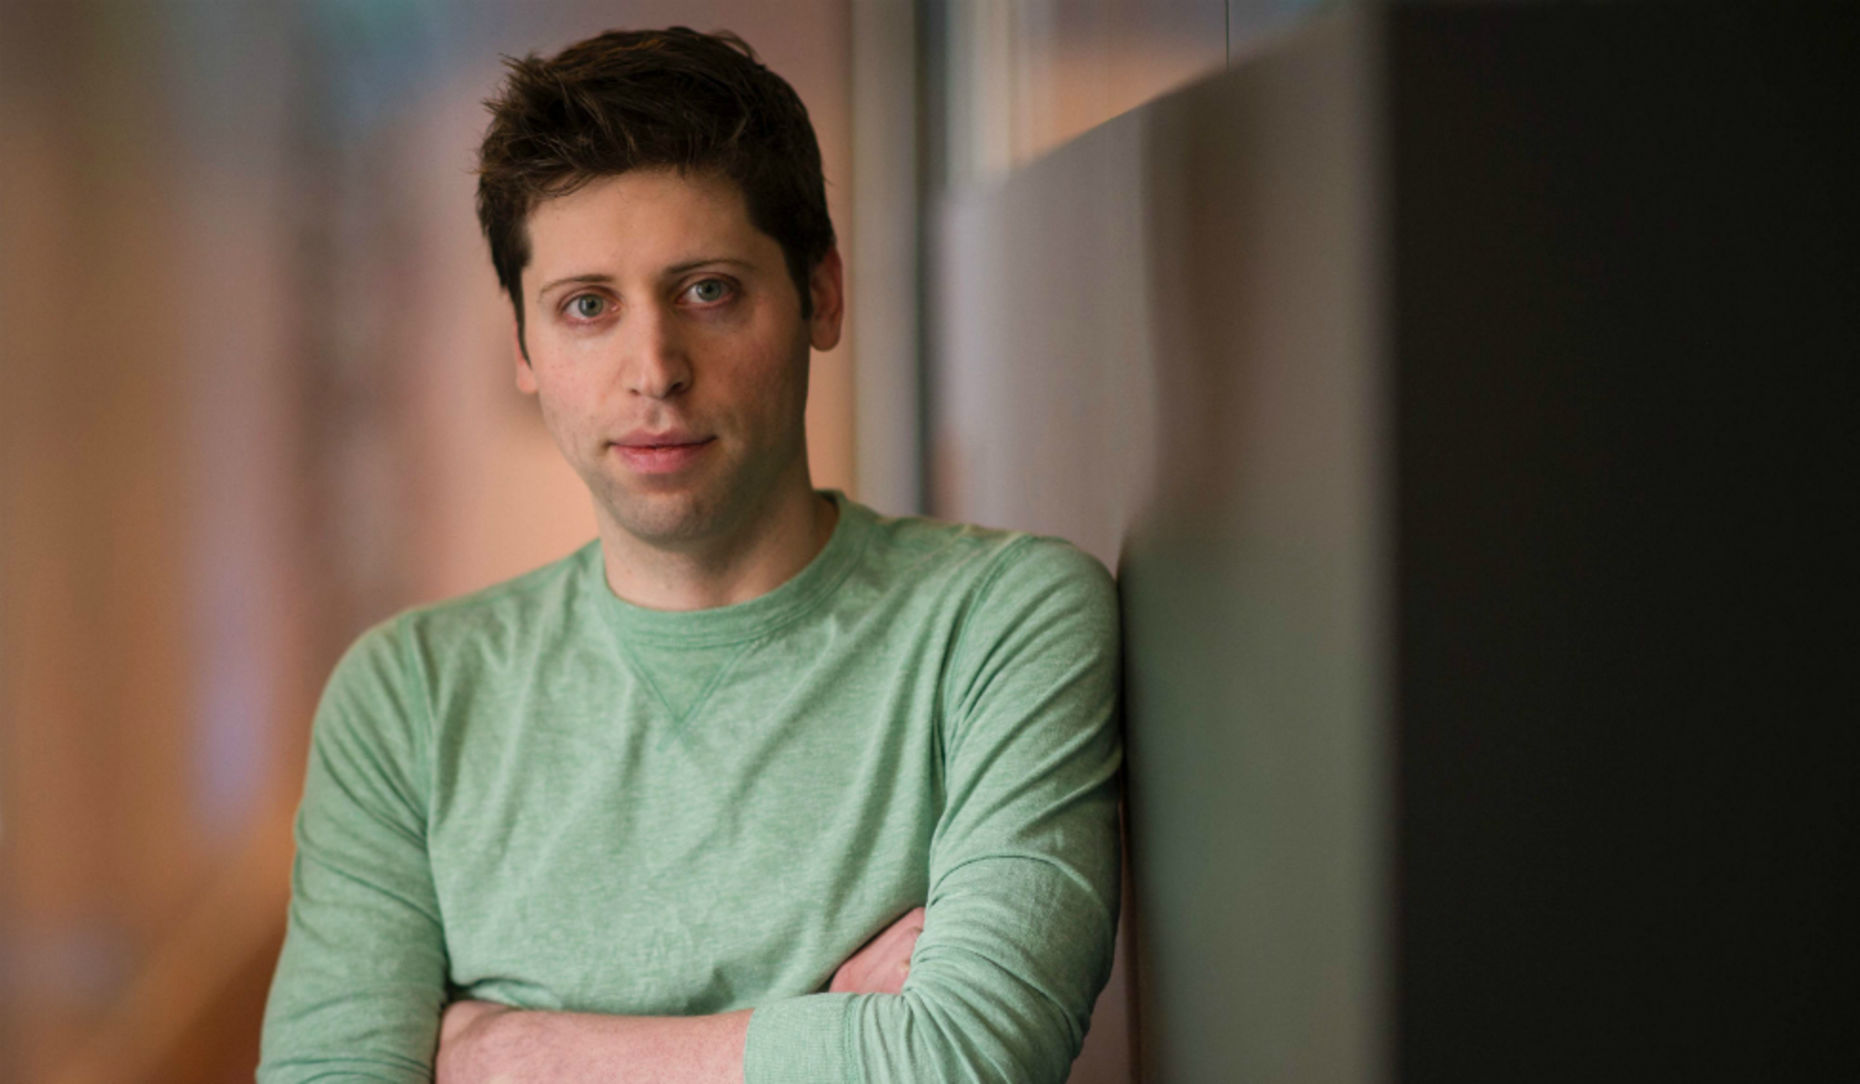 Y Combinator President Sam Altman. Photo by Bloomberg.